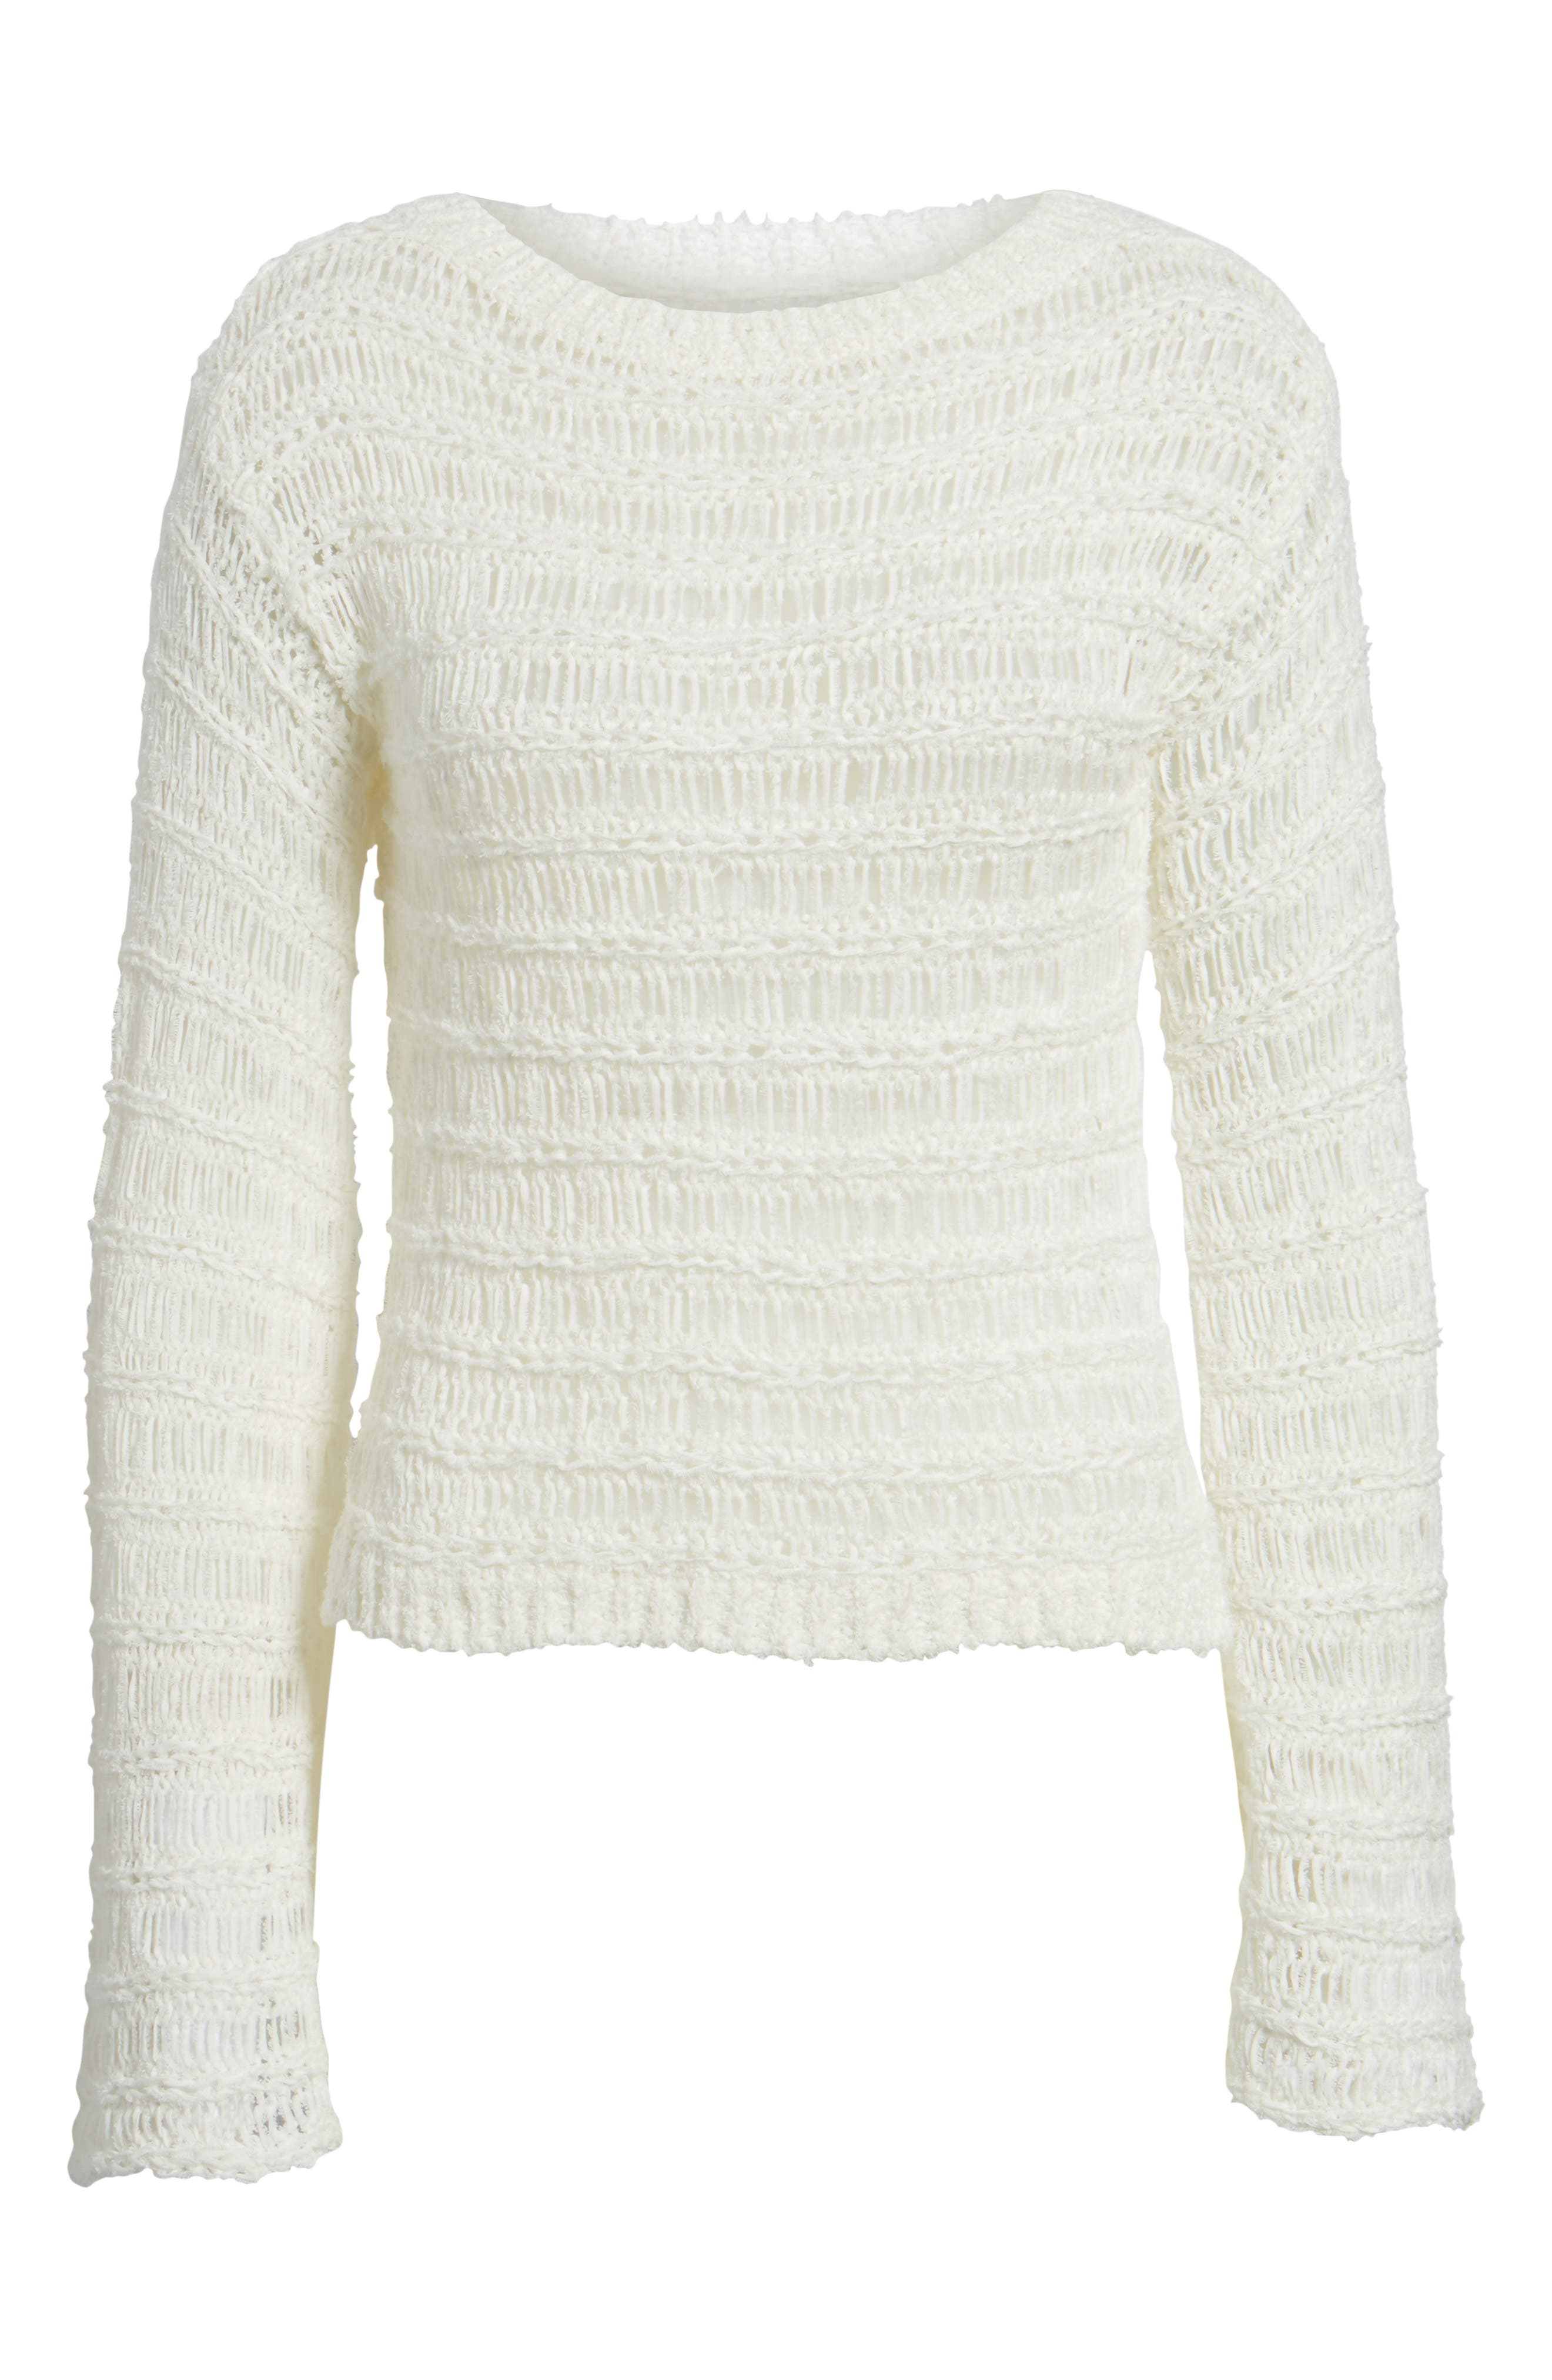 Ladder Stitch Sweater,                             Alternate thumbnail 6, color,